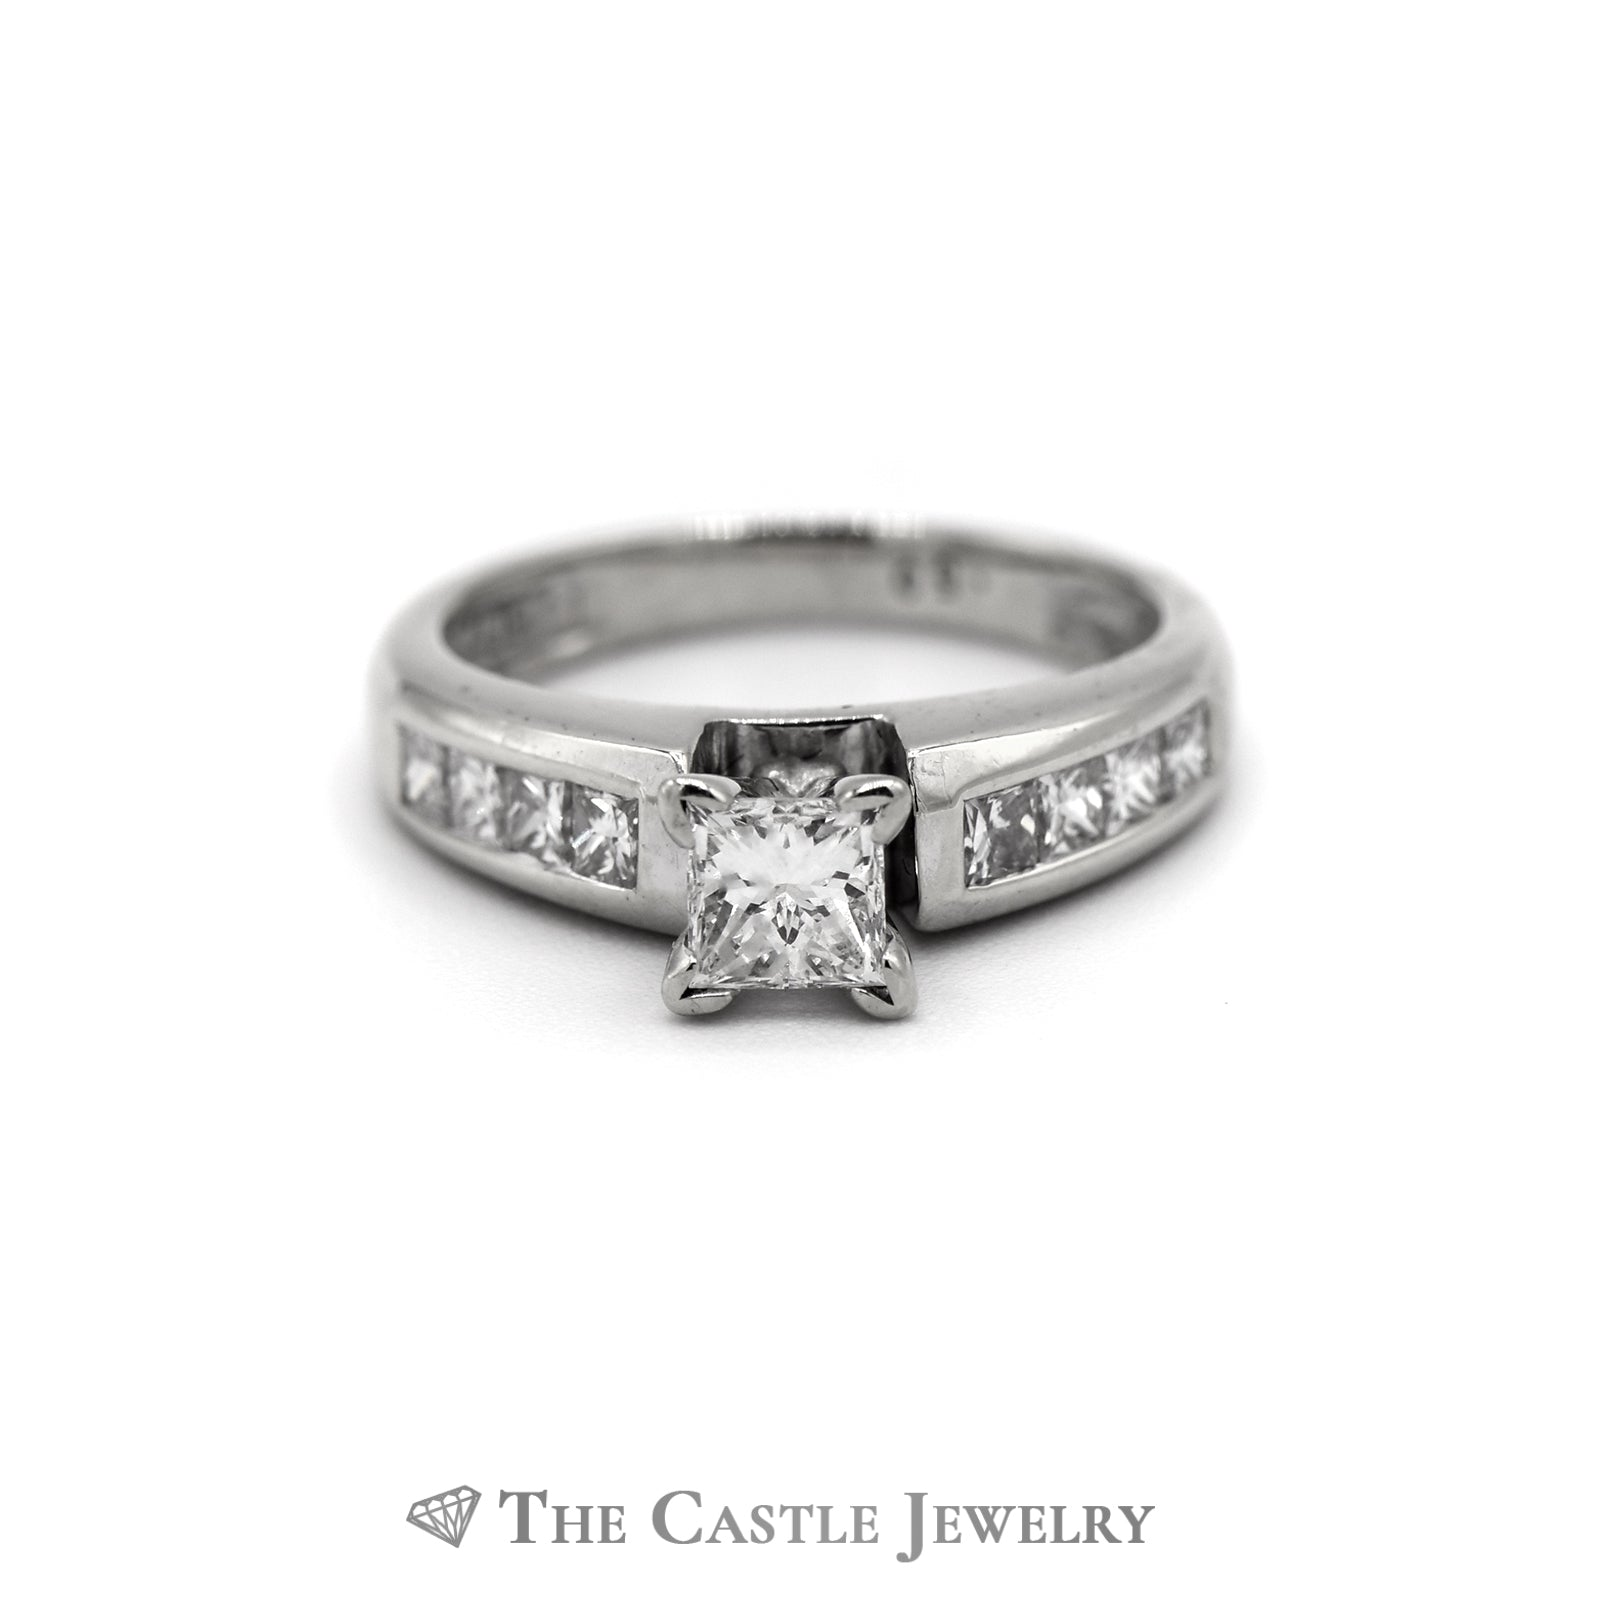 Princess Cut Diamond Engagement Ring 1cttw with Channel Set Mounting in 14K White Gold